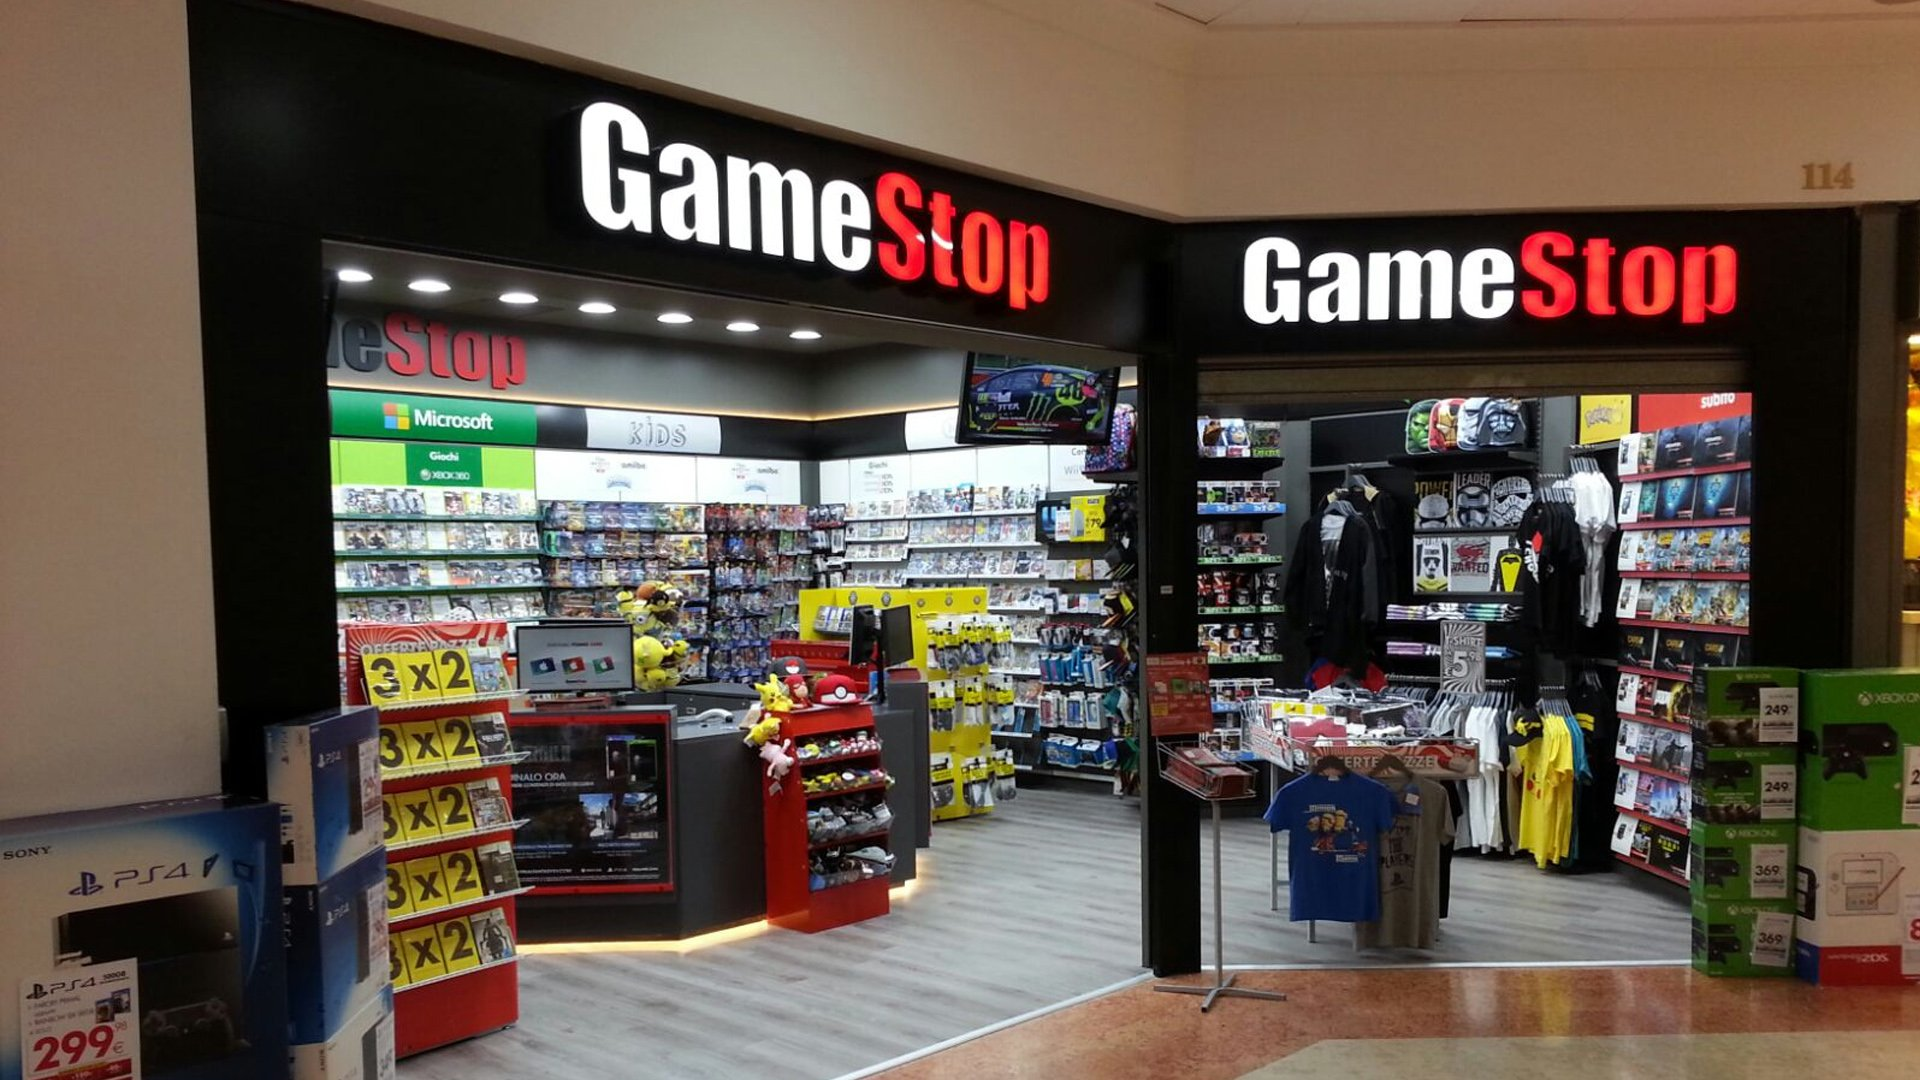 GameStop shelves plan for unlimited game rental subscription service